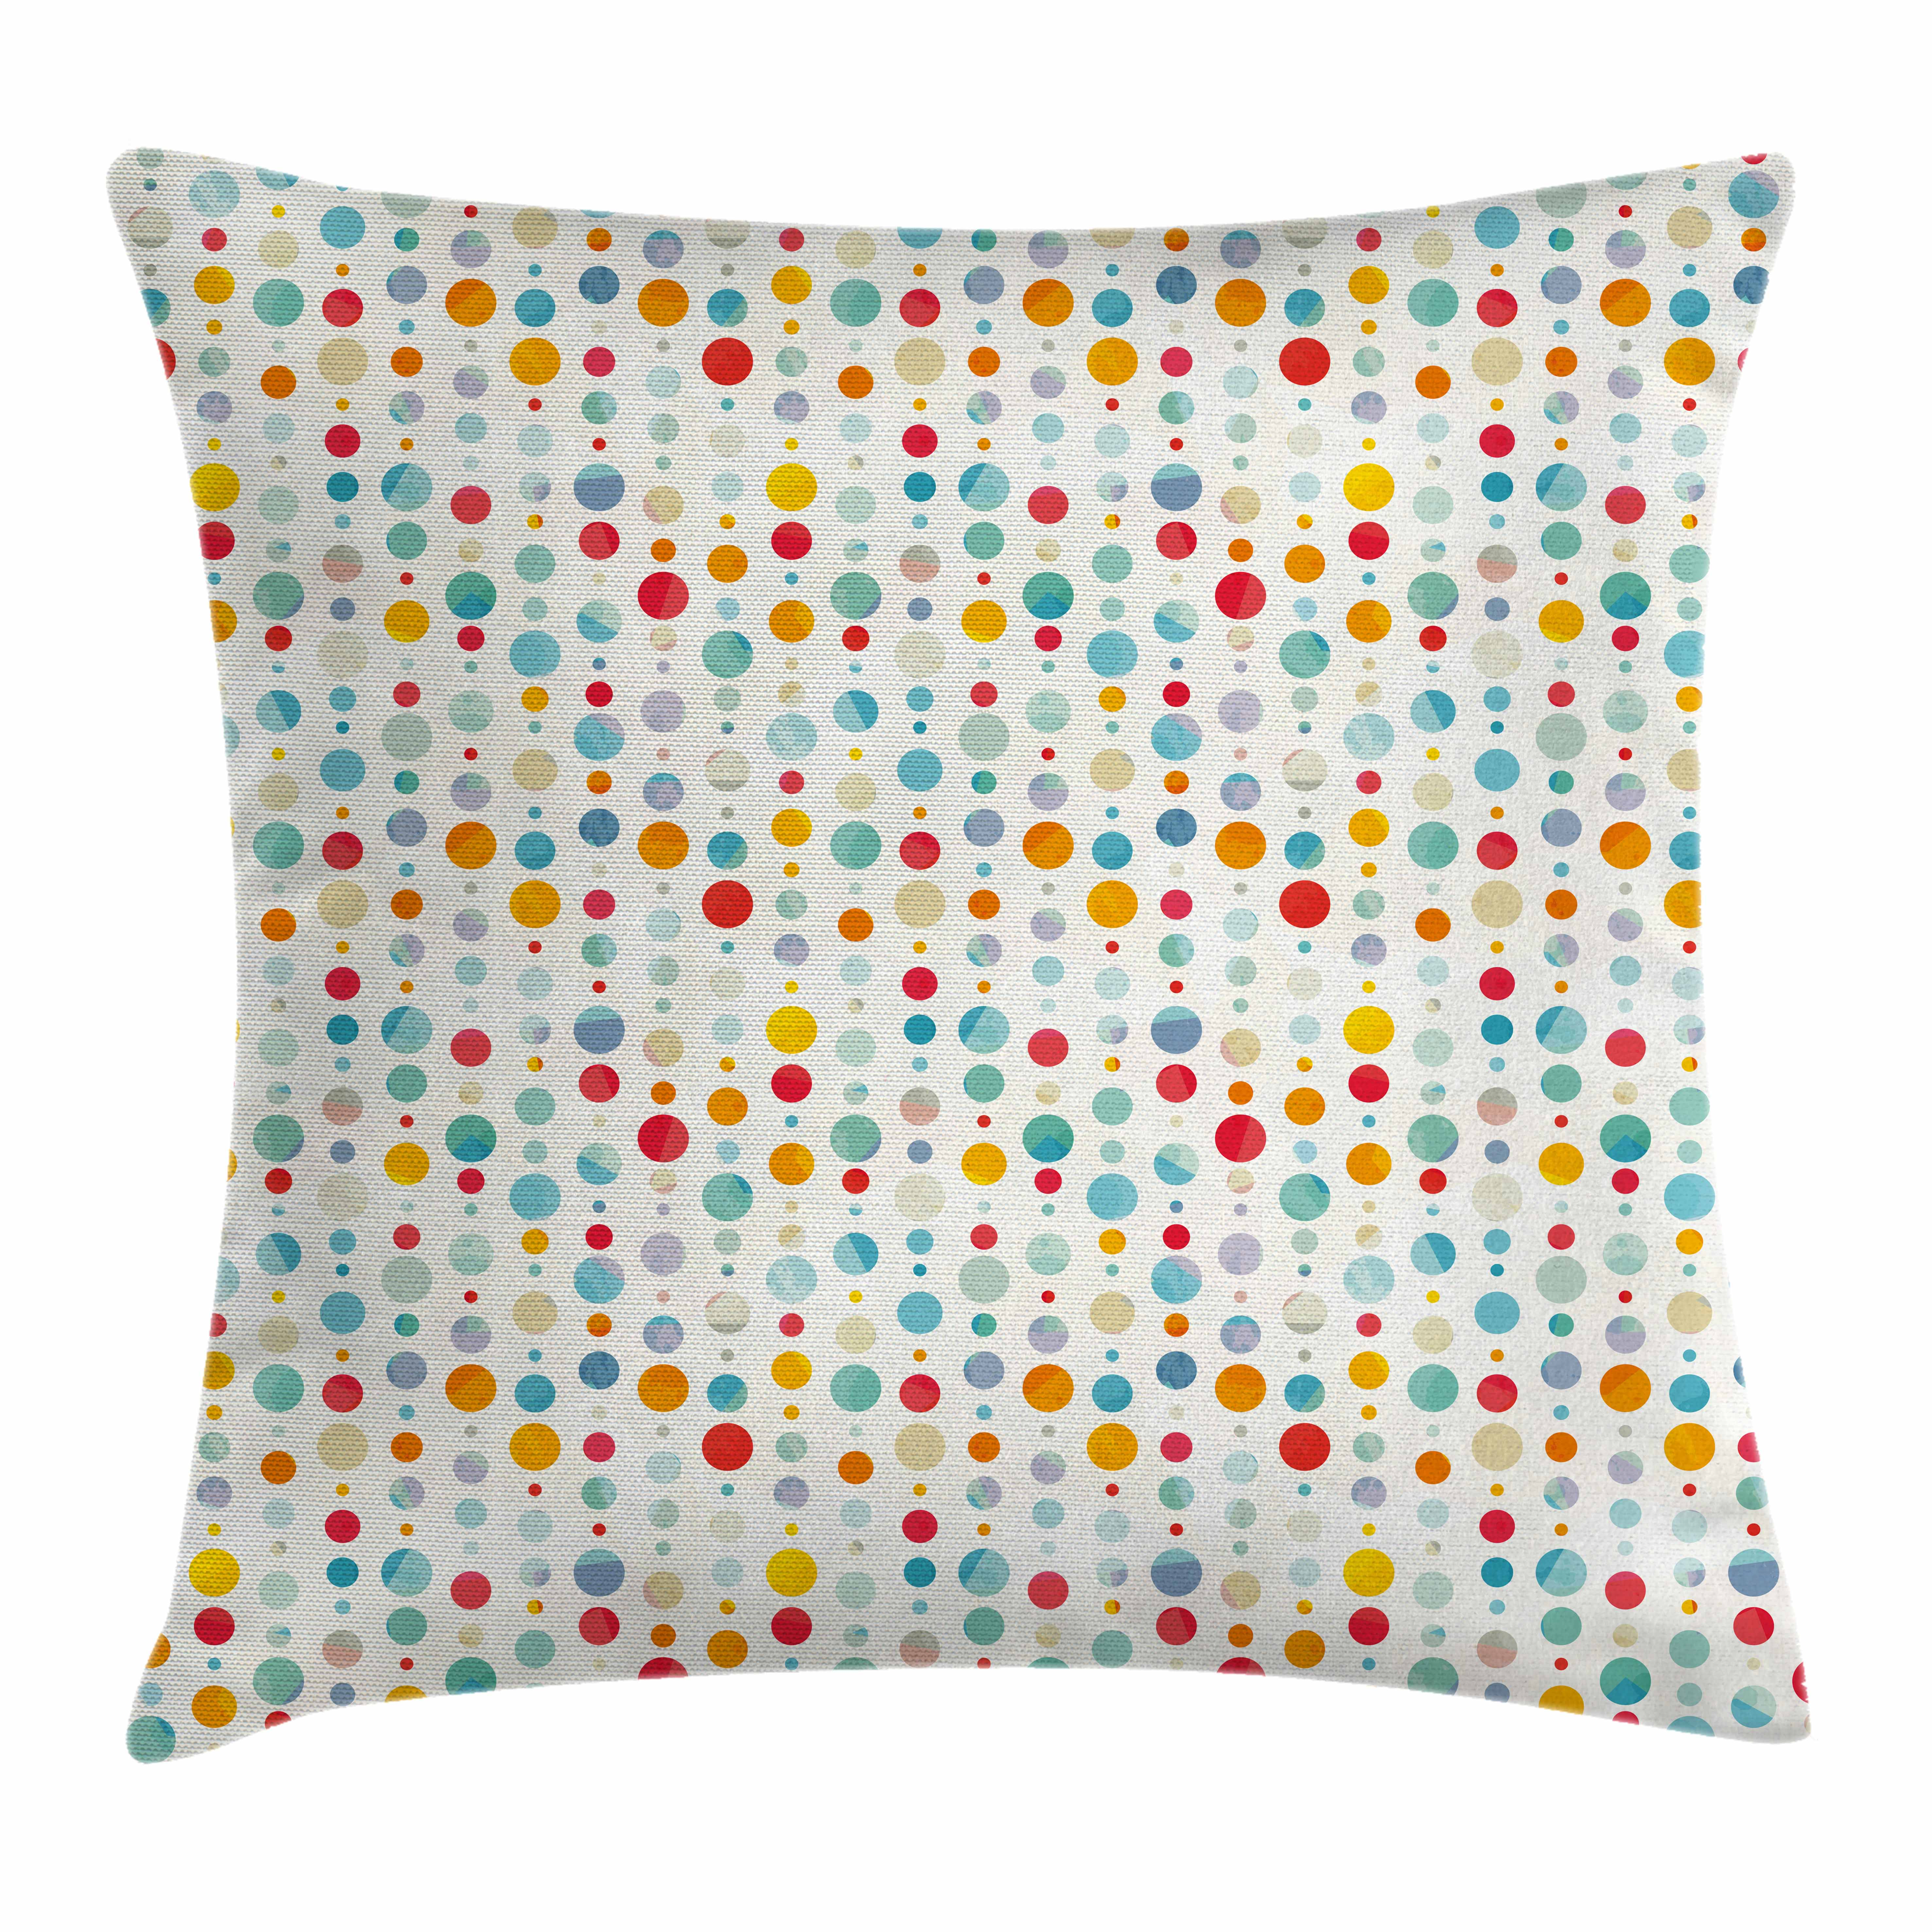 Abstract Throw Pillow Cushion Cover, Colorful Circular Large Dots Bubble Happy Hipster Kids Nursery Stylish Fun Print, Decorative Square Accent Pillow Case, 16 X 16 Inches, Multicolor, by Ambesonne